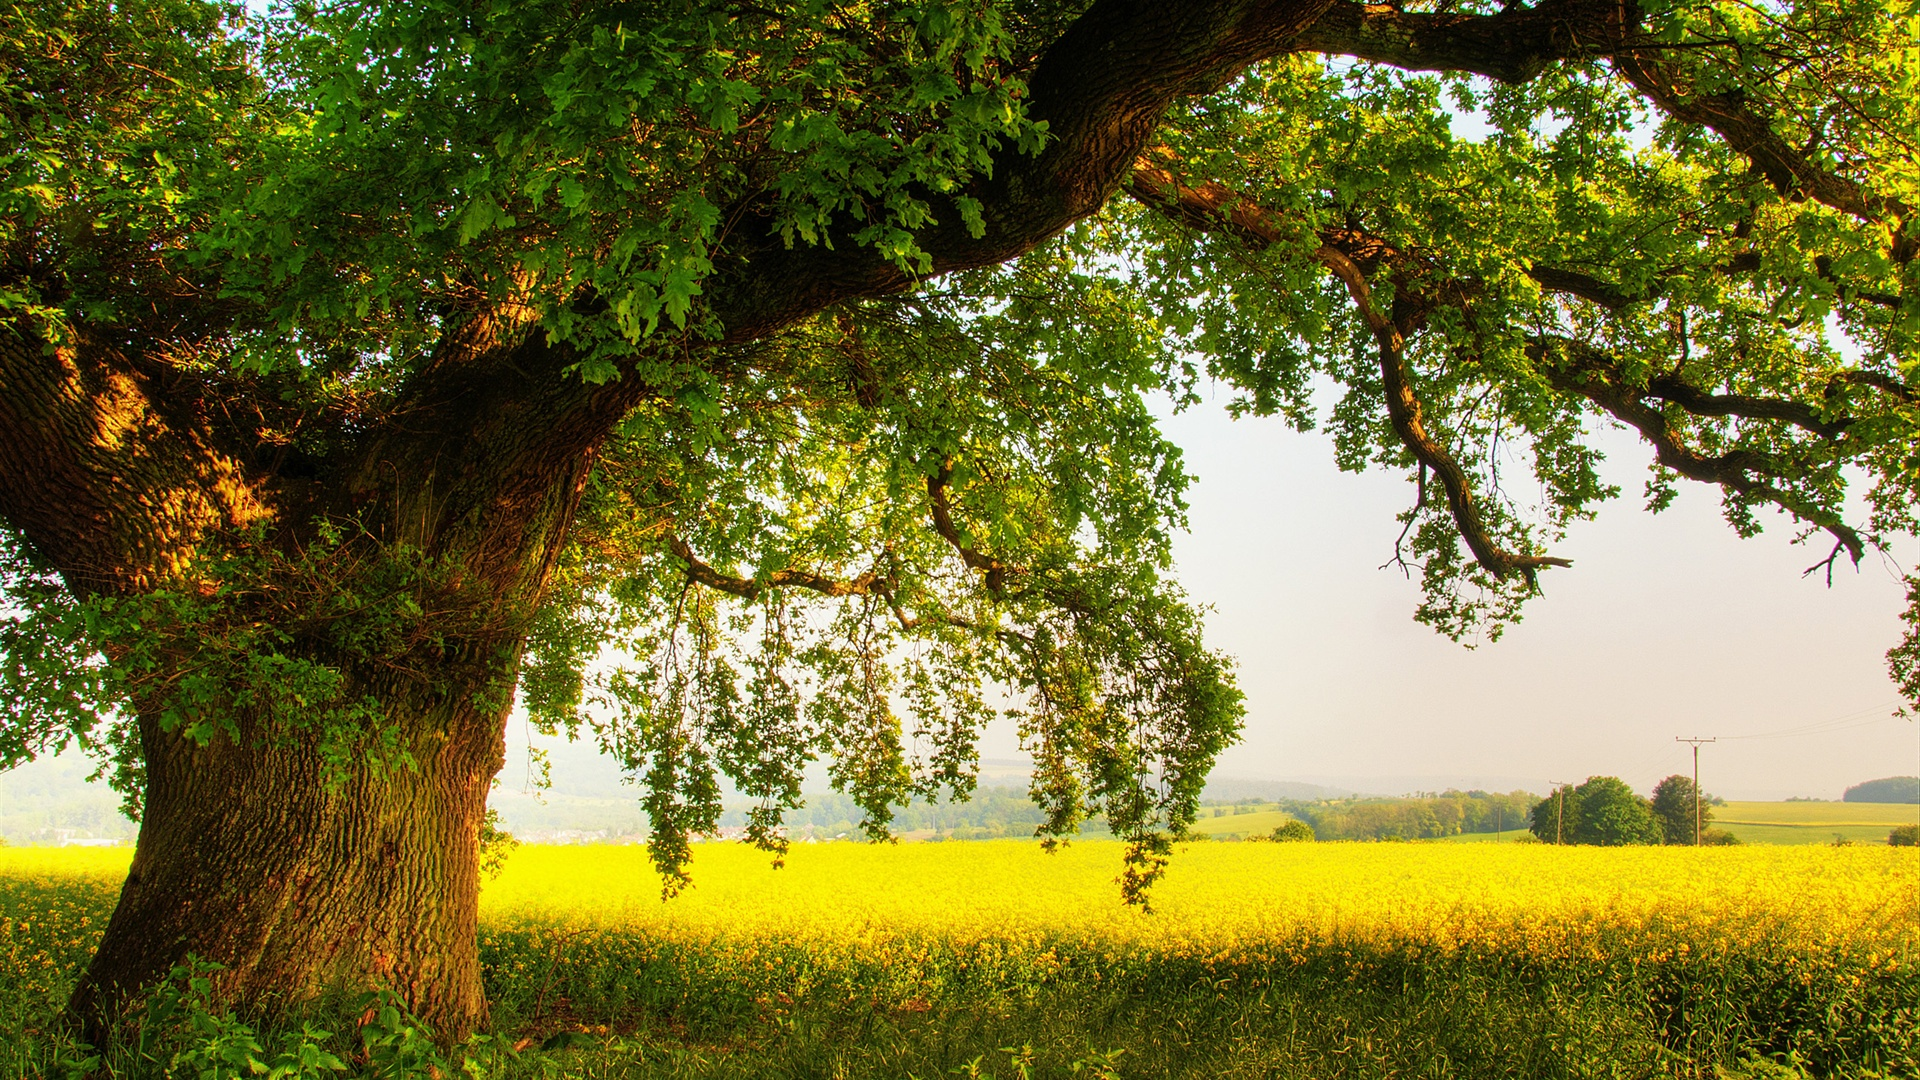 Oak Tree Wallpaper HD 32960 1920x1080 px HDWallSourcecom 1920x1080